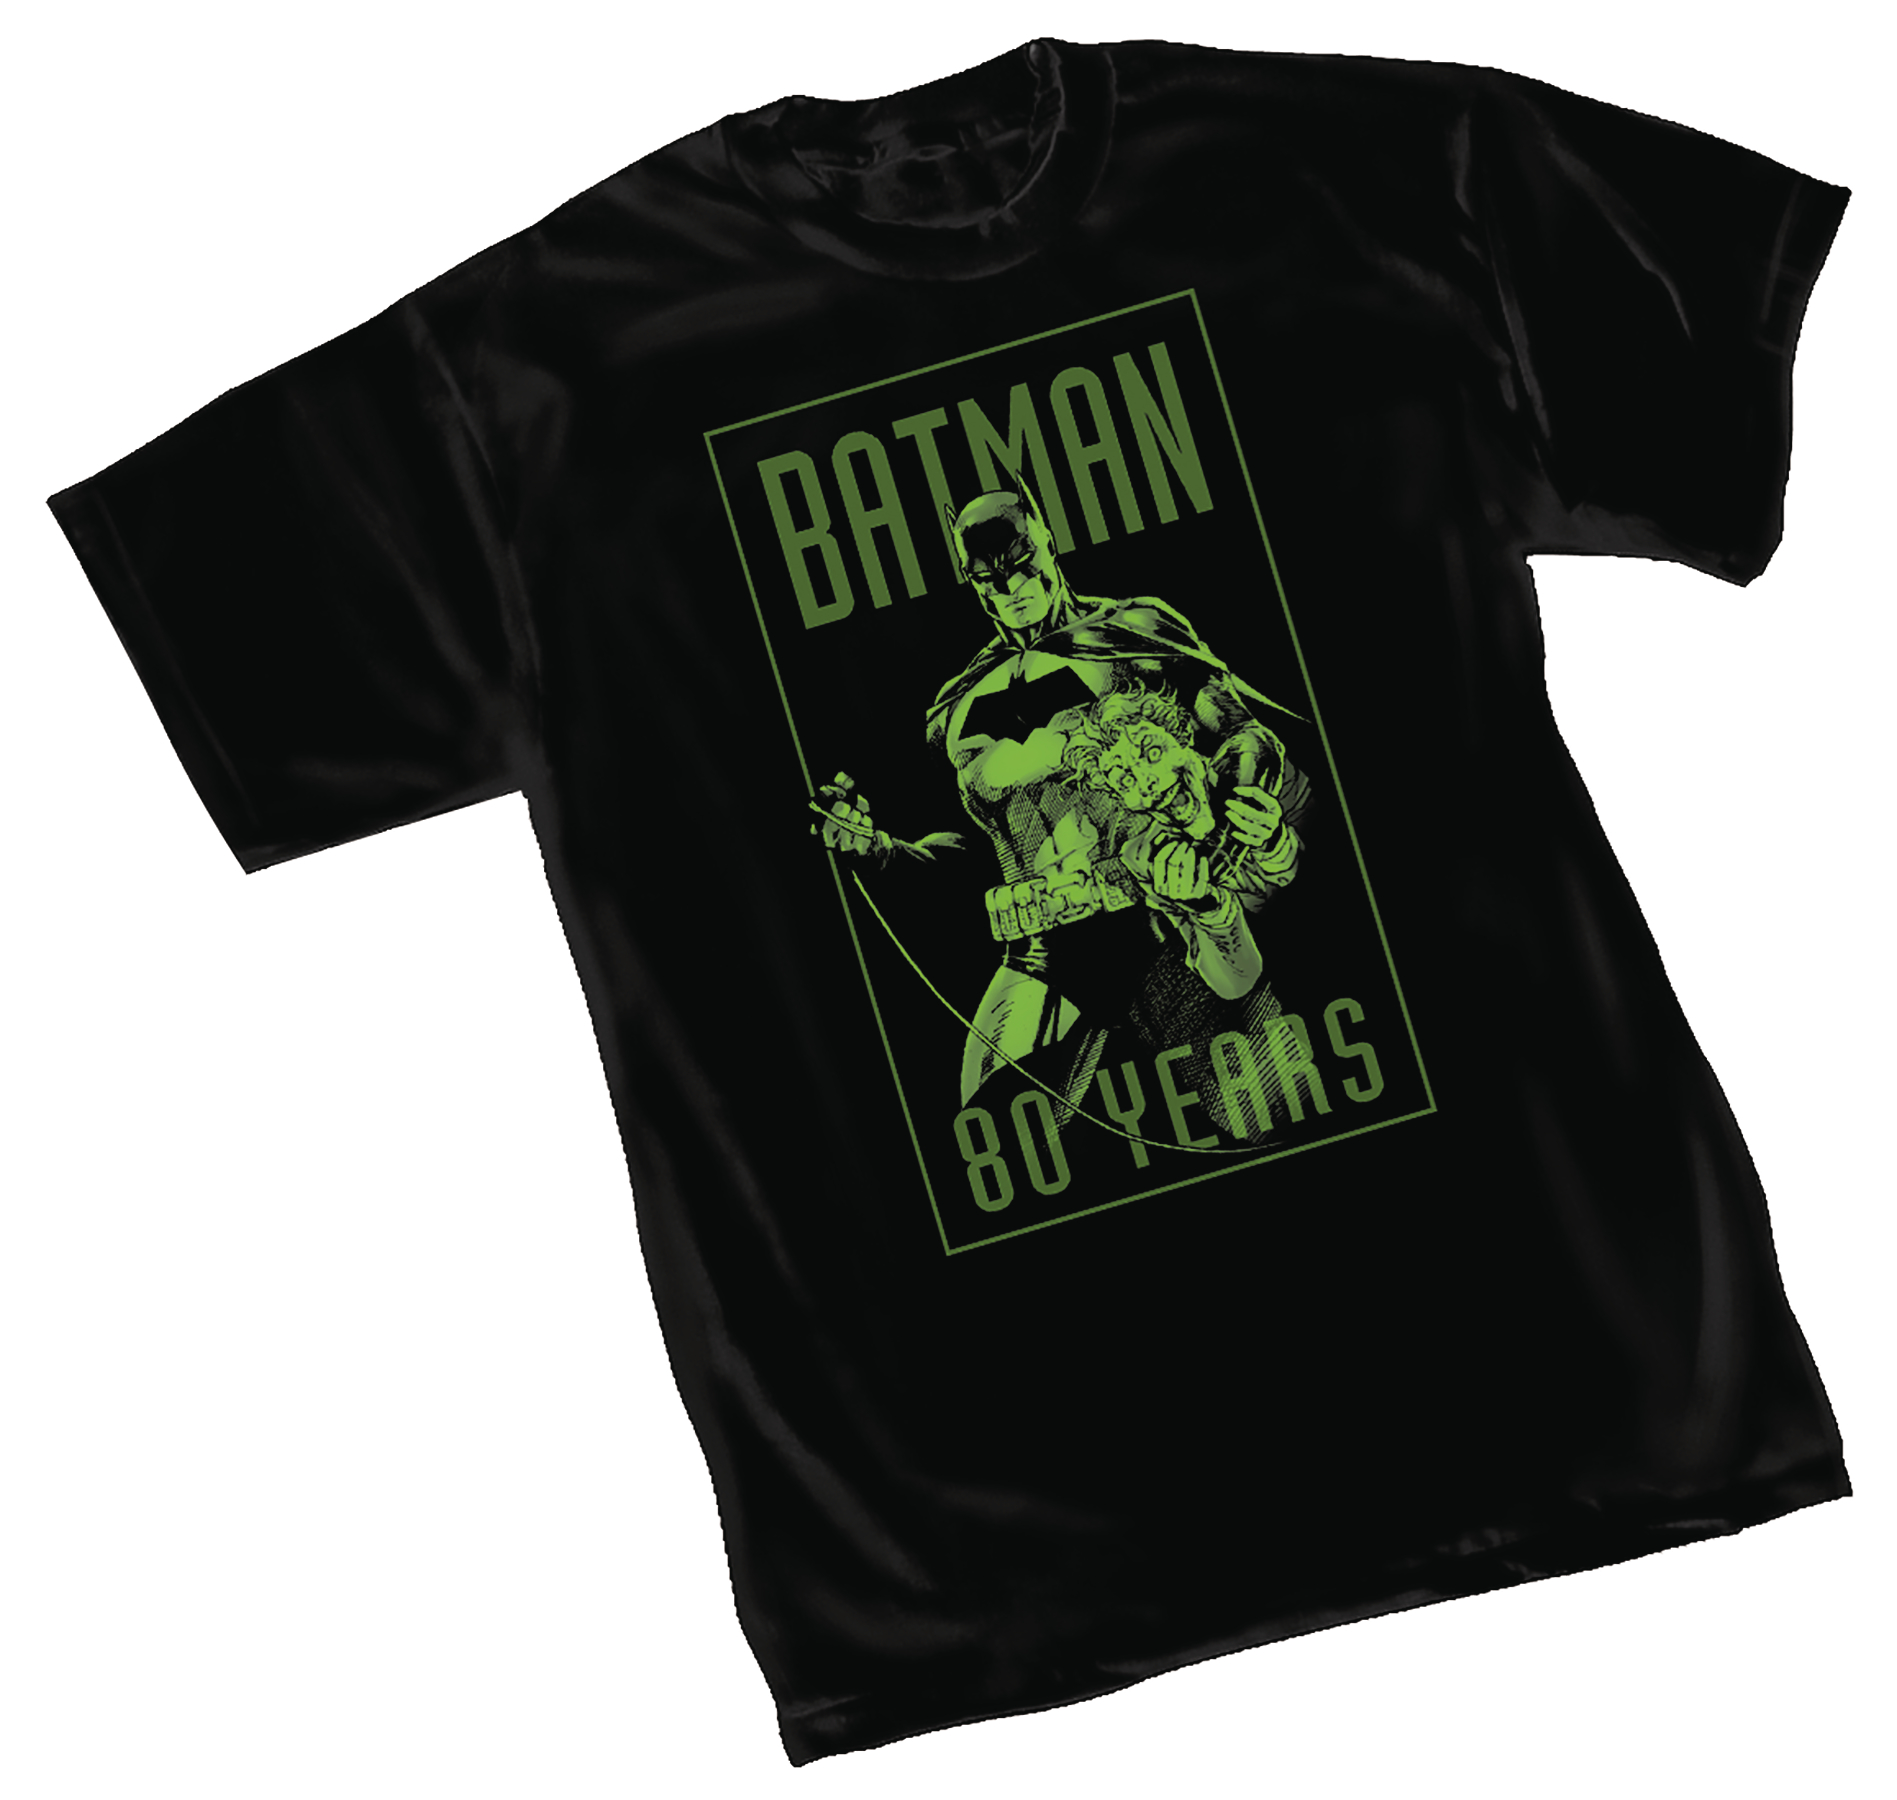 BATMAN & JOKER T/S XL